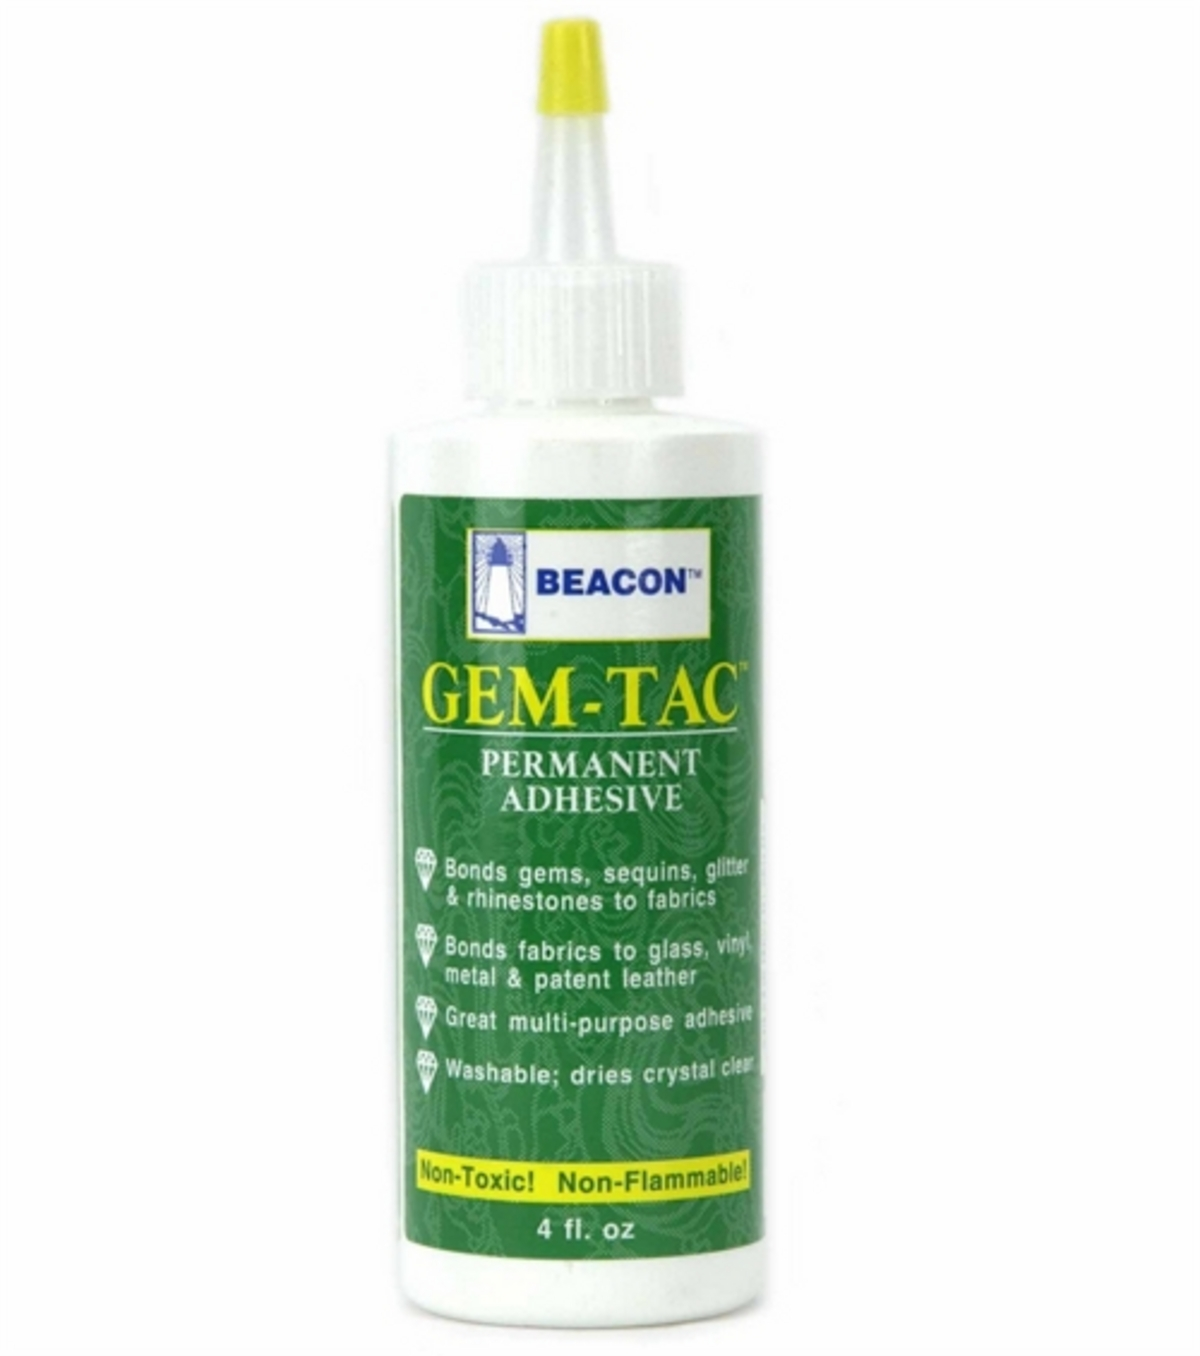 Gem-Tac Permanent Adhesive 4 oz